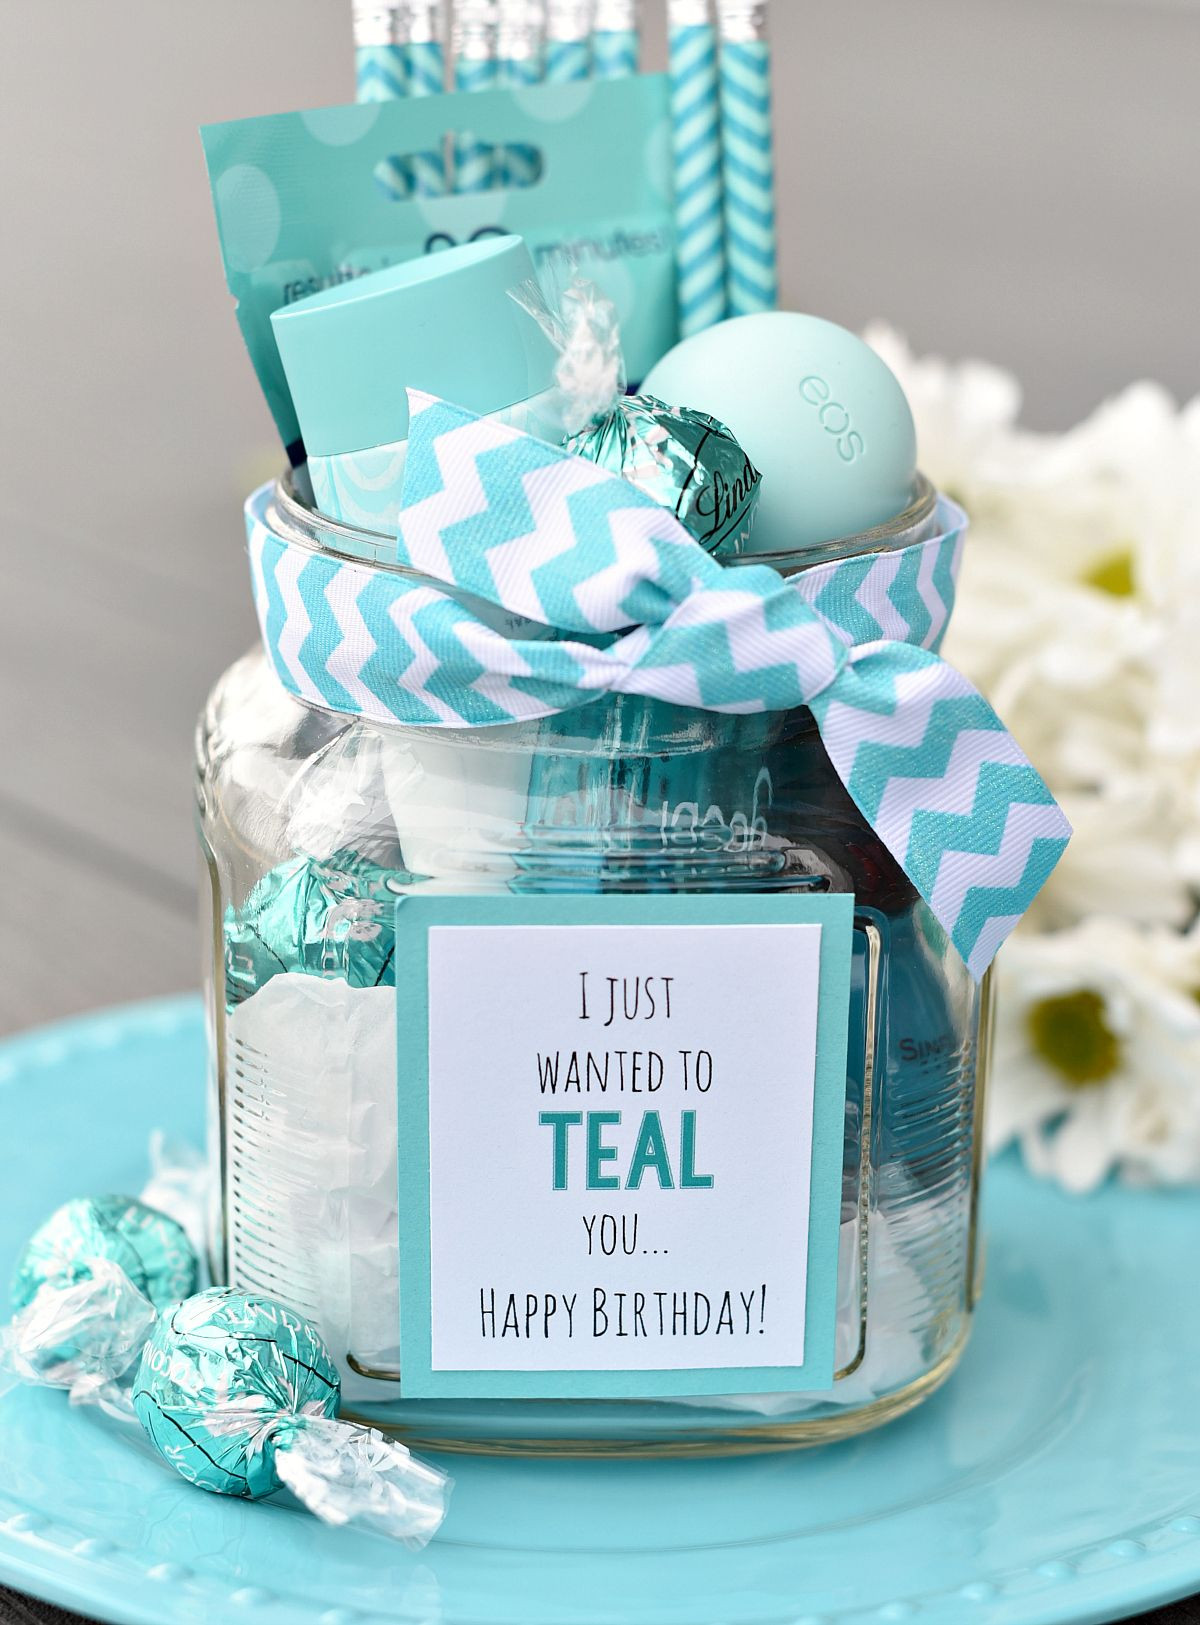 Gift Ideas For Birthday  Teal Birthday Gift Idea for Friends Confetti